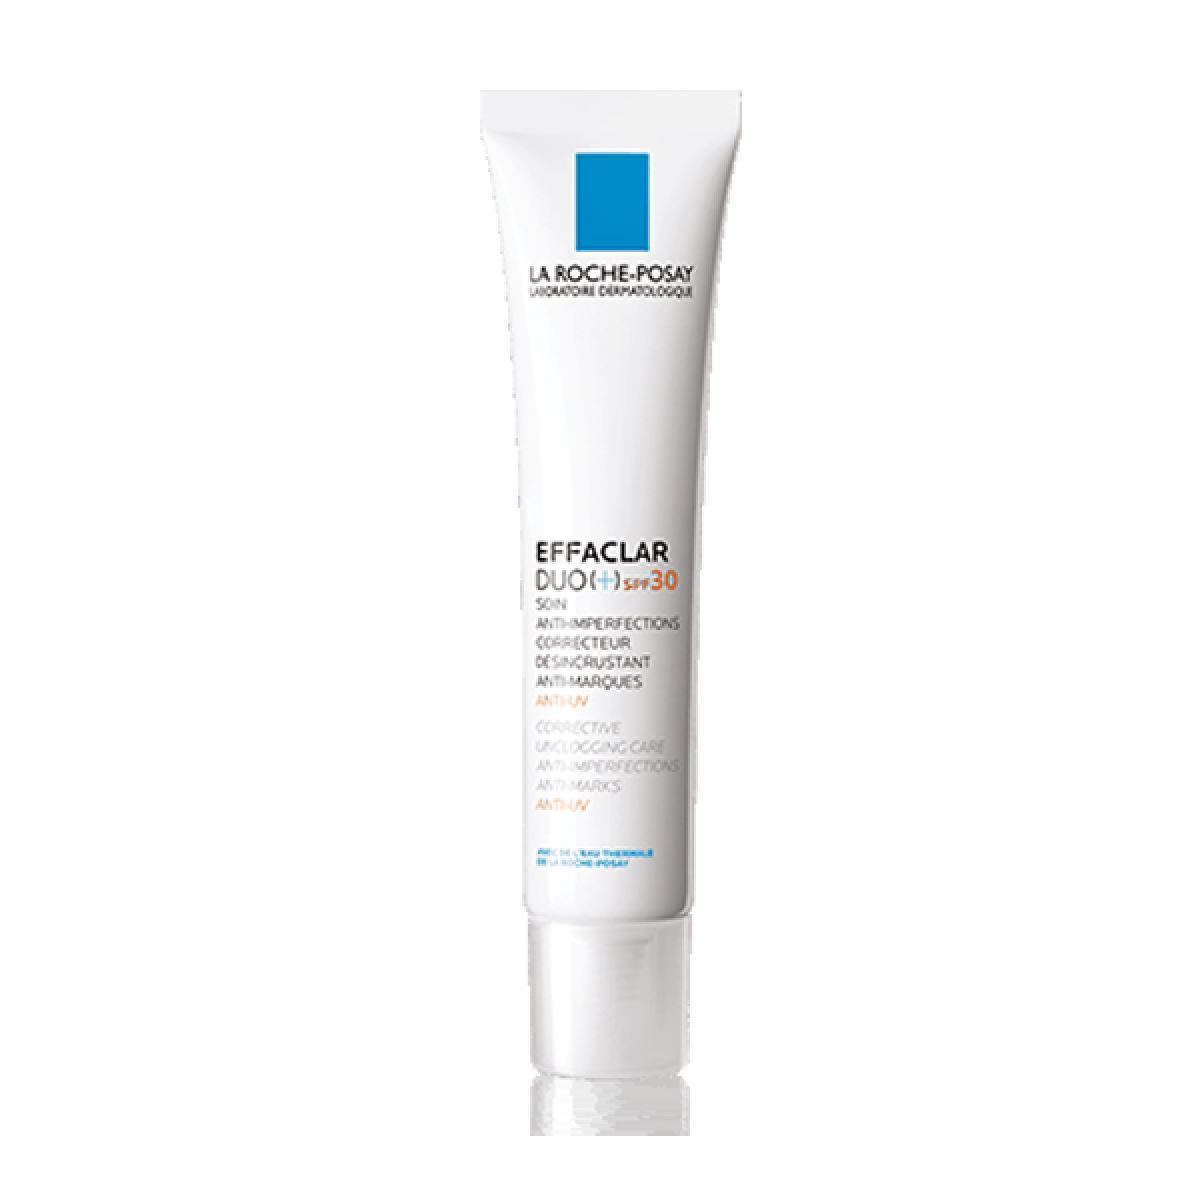 la roche posay effaclar duo spf 30 40ml parapharmacie pharmarket. Black Bedroom Furniture Sets. Home Design Ideas